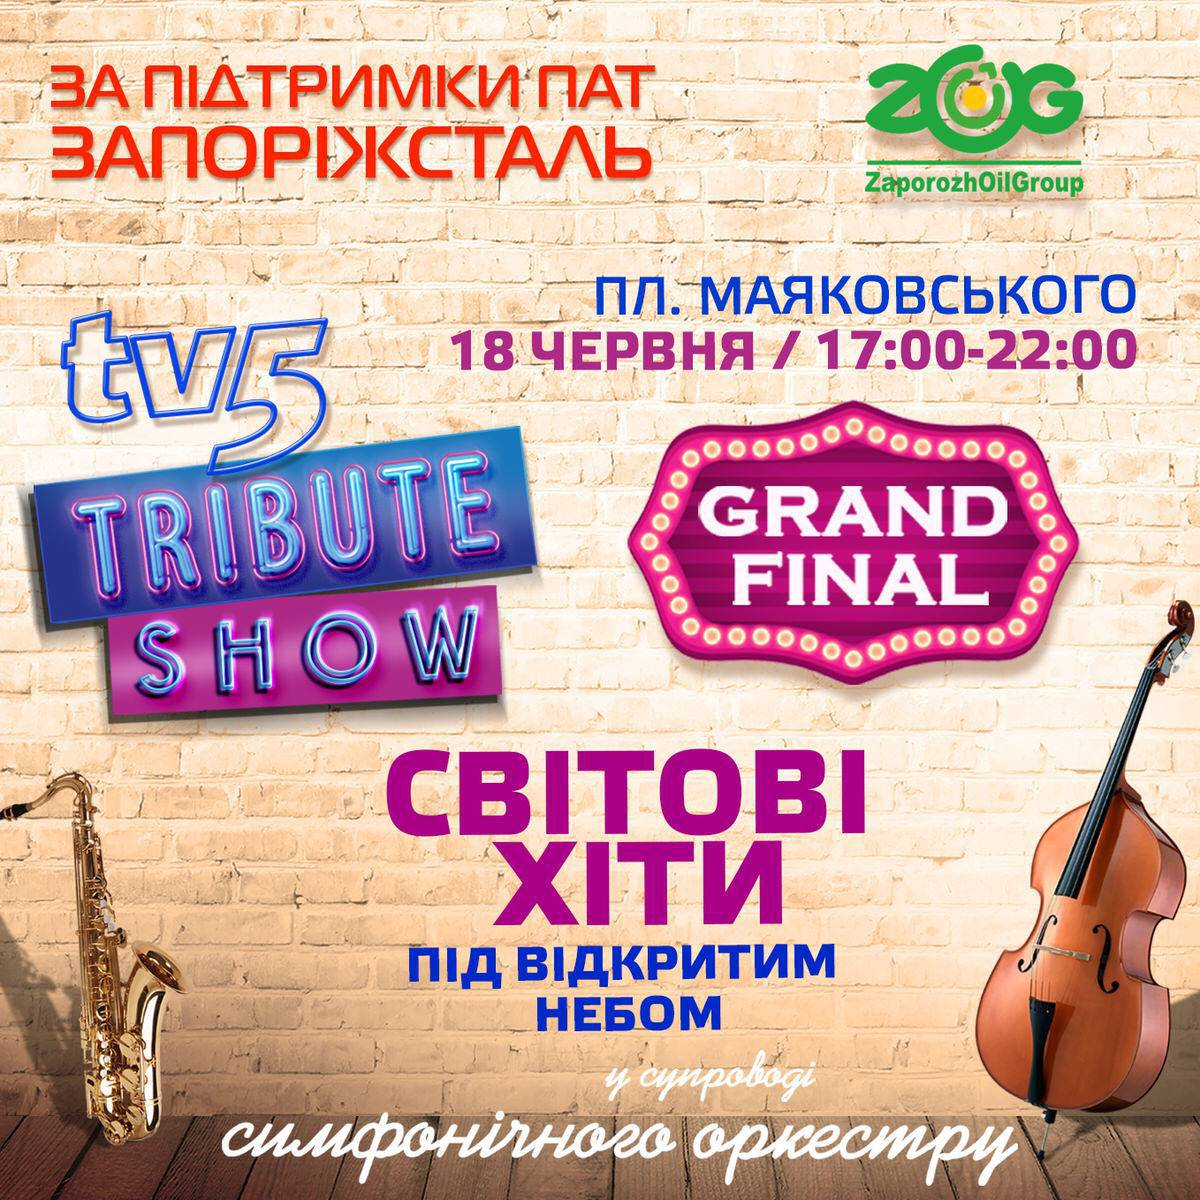 Концерт TV5 Tribute Show